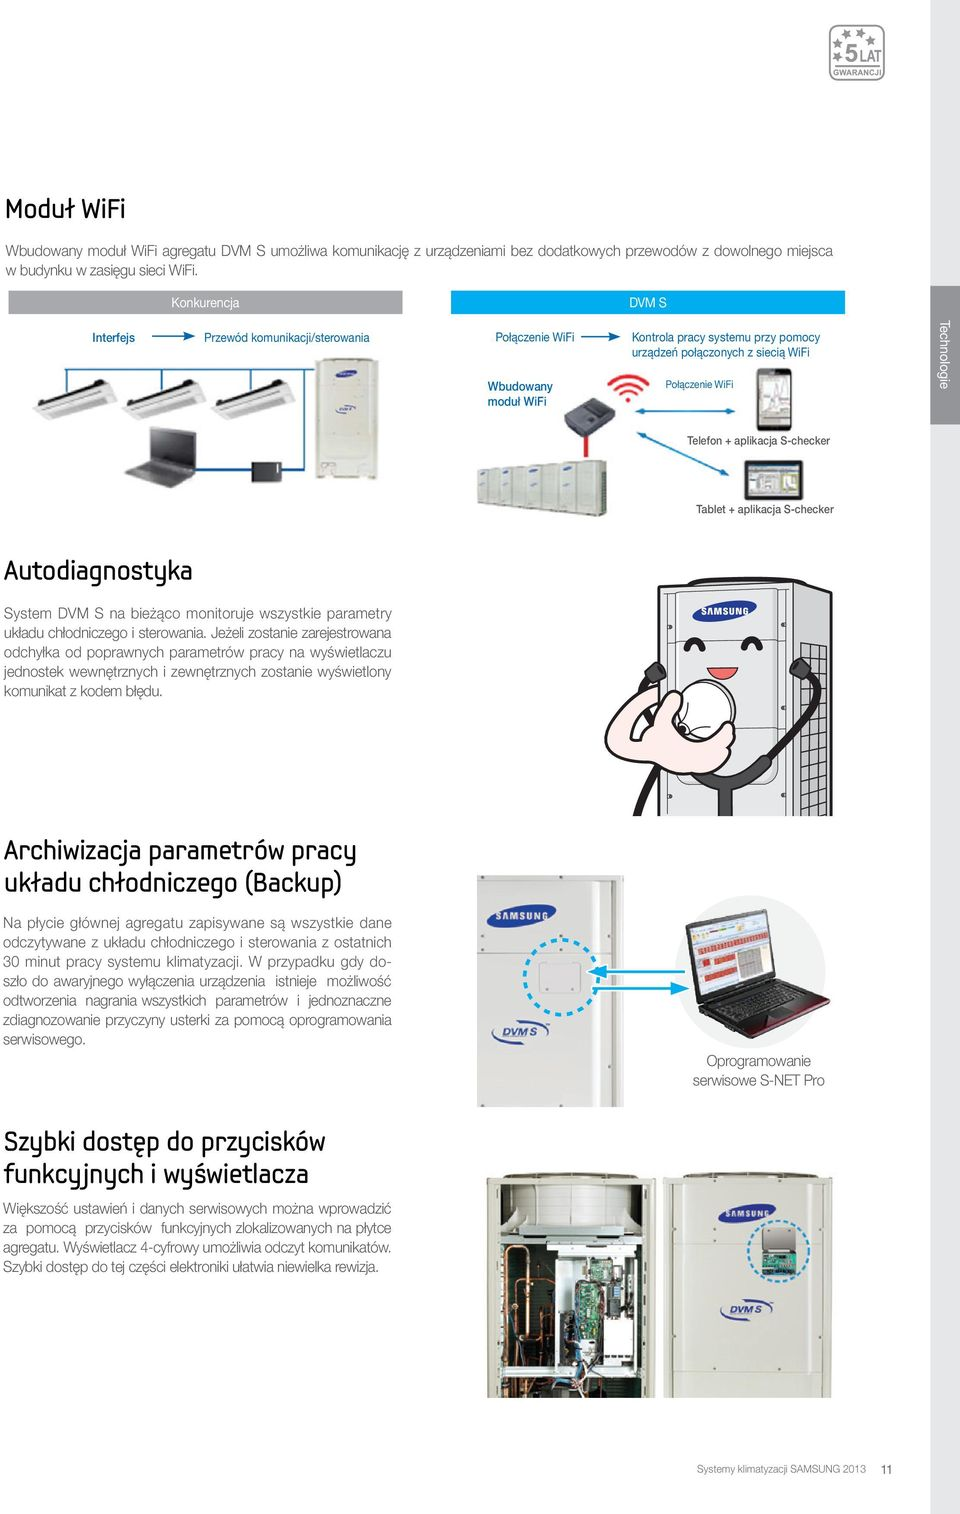 Telefon + aplikacja S-checker Tablet + aplikacja S-checker Self-diagnosis Mode Autodiagnostyka The DVM PLUS IV monitors the operation status, and will System DVM S na bieżąco monitoruje display an